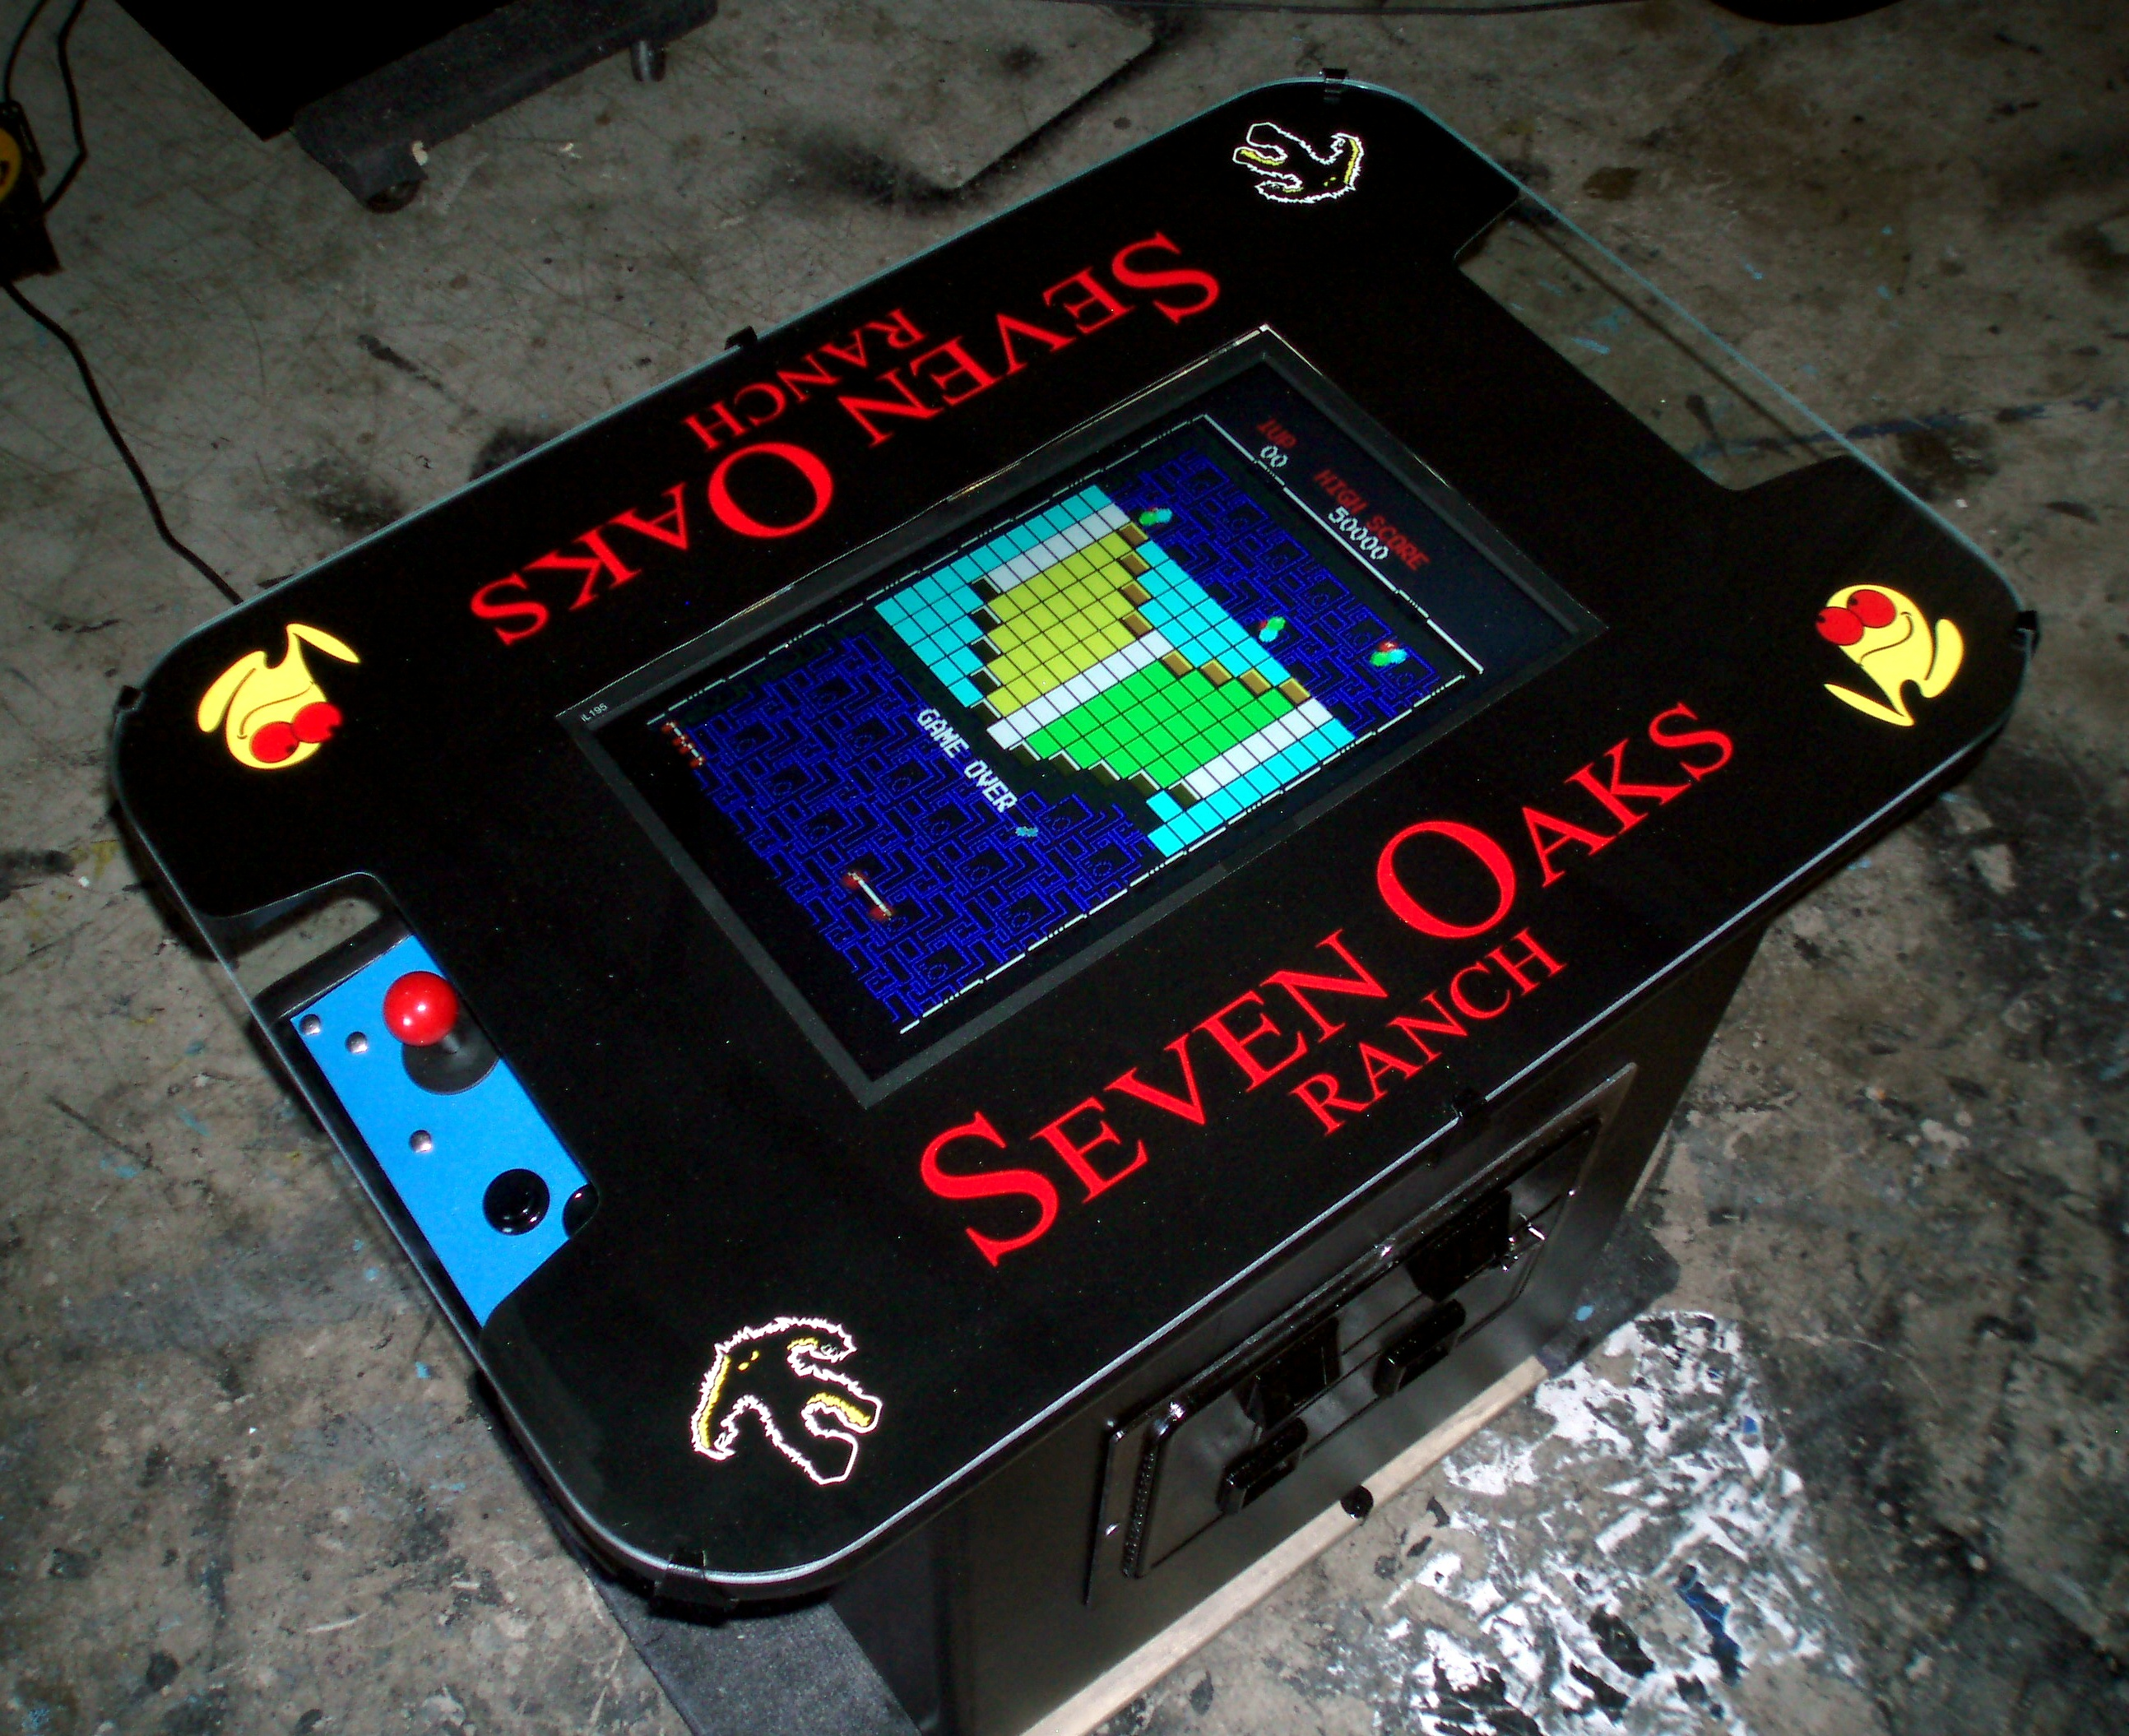 Classic Midway Style Cocktail Table Video Game Machine